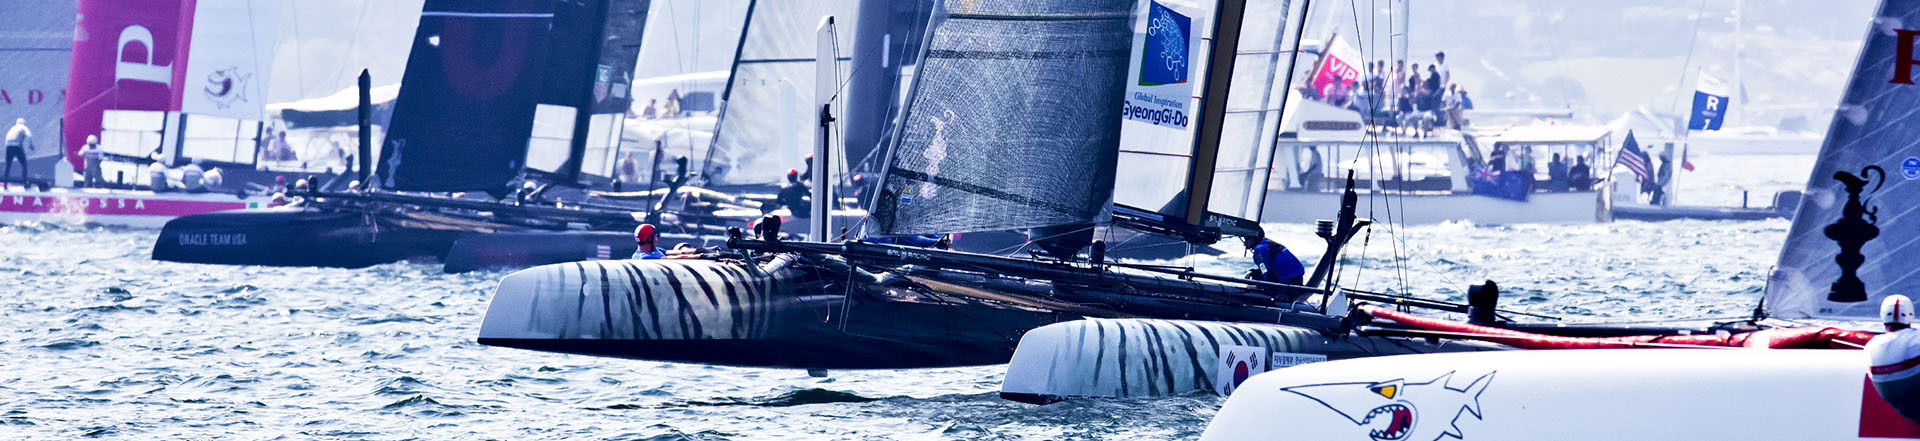 History of the America's Cup - The Championship of Yachting